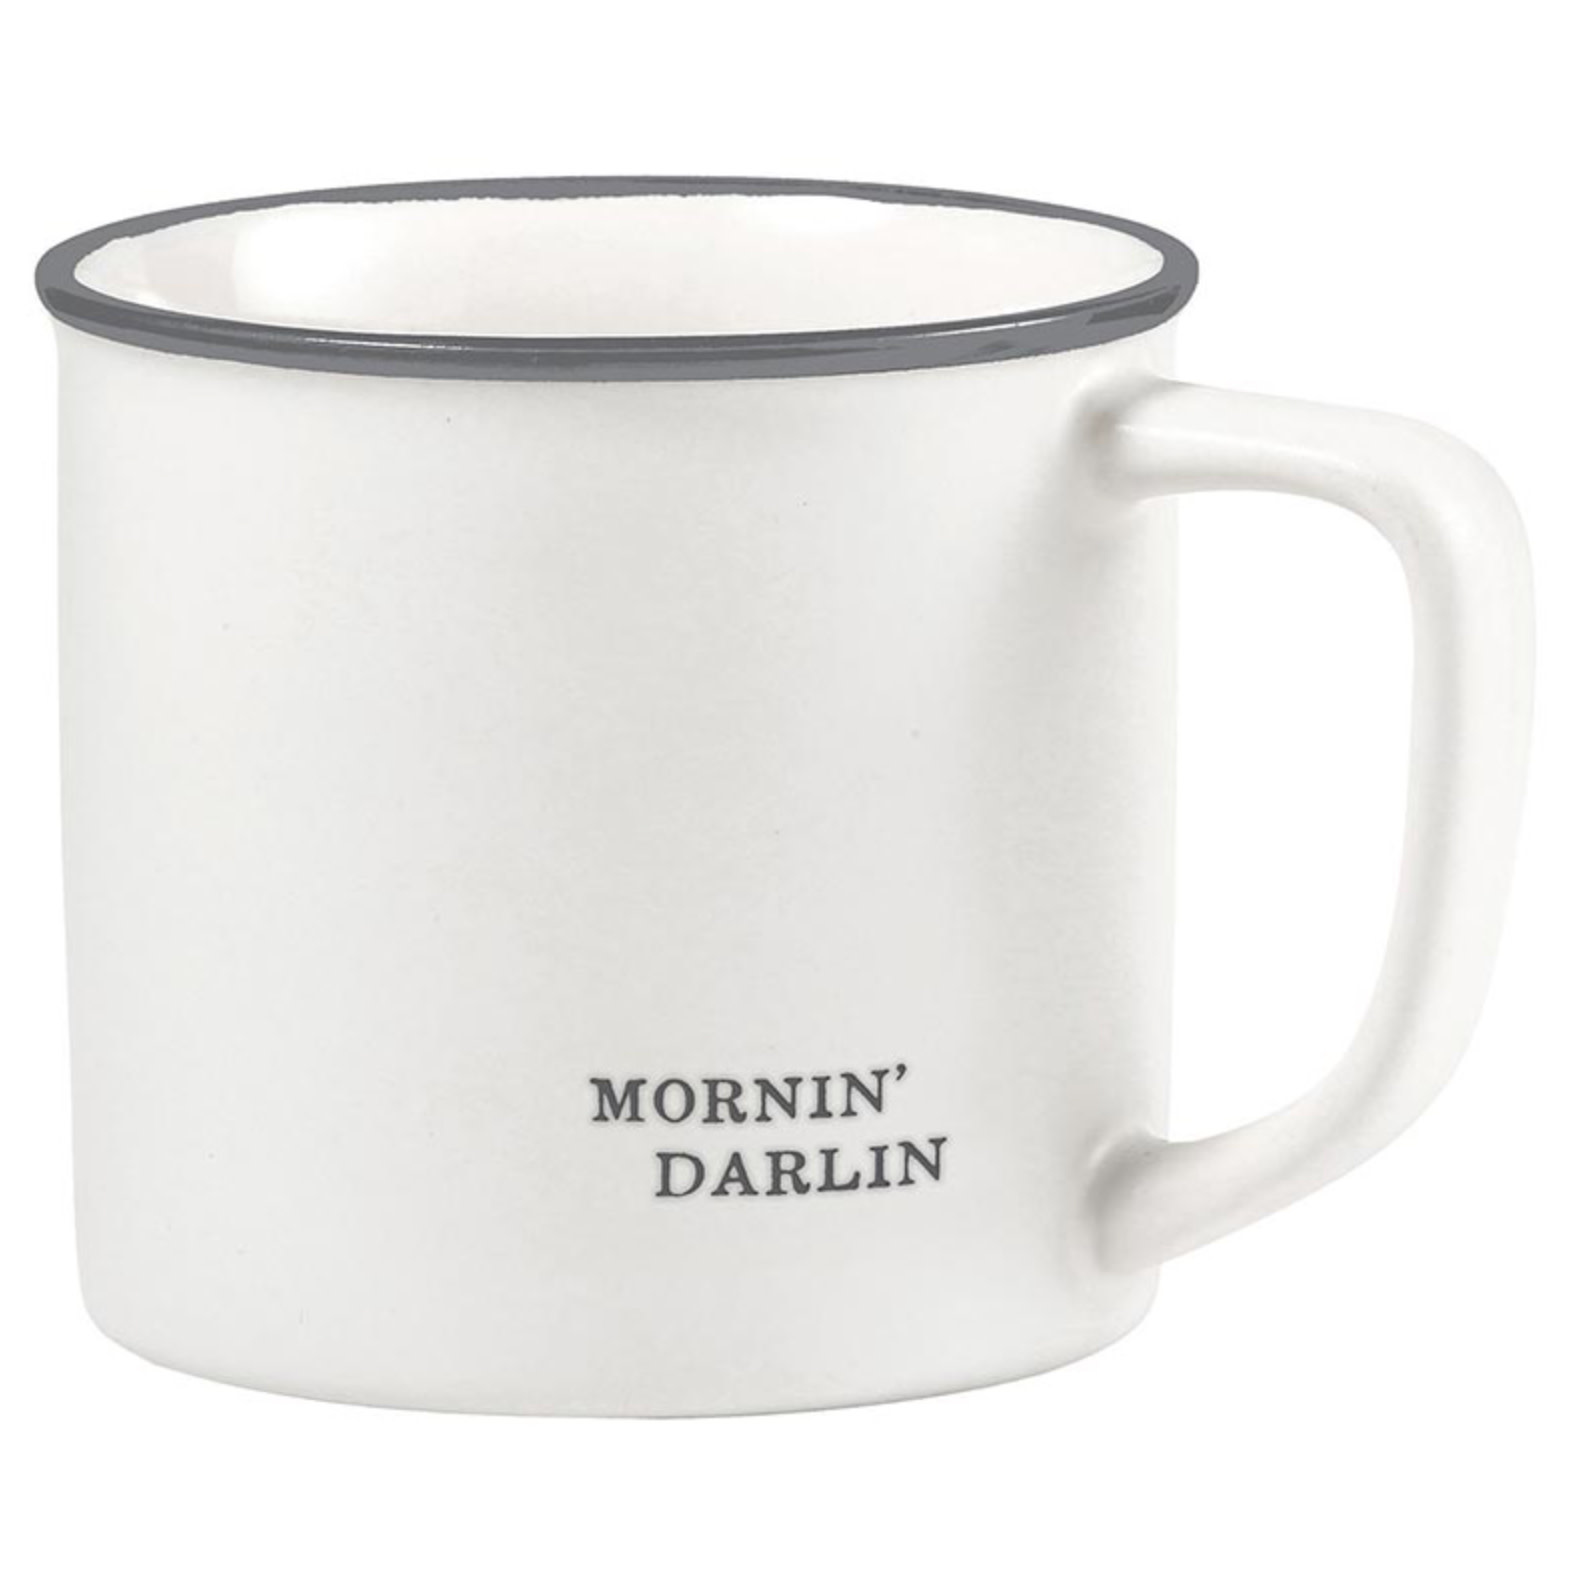 Mornin' Darling Mug